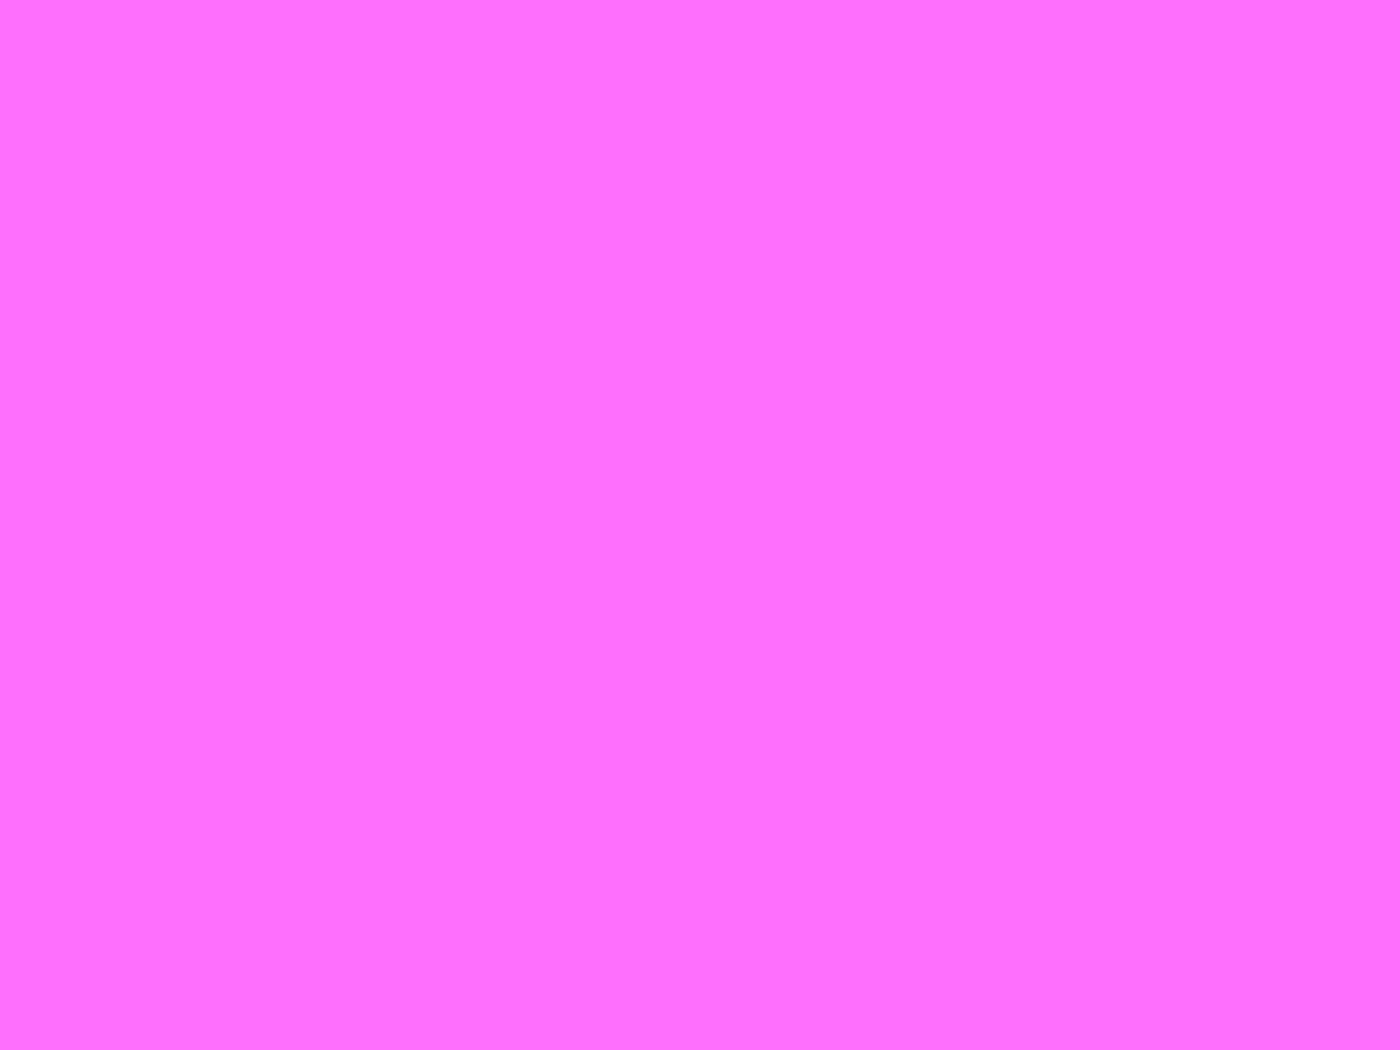 1400x1050 Shocking Pink Crayola Solid Color Background